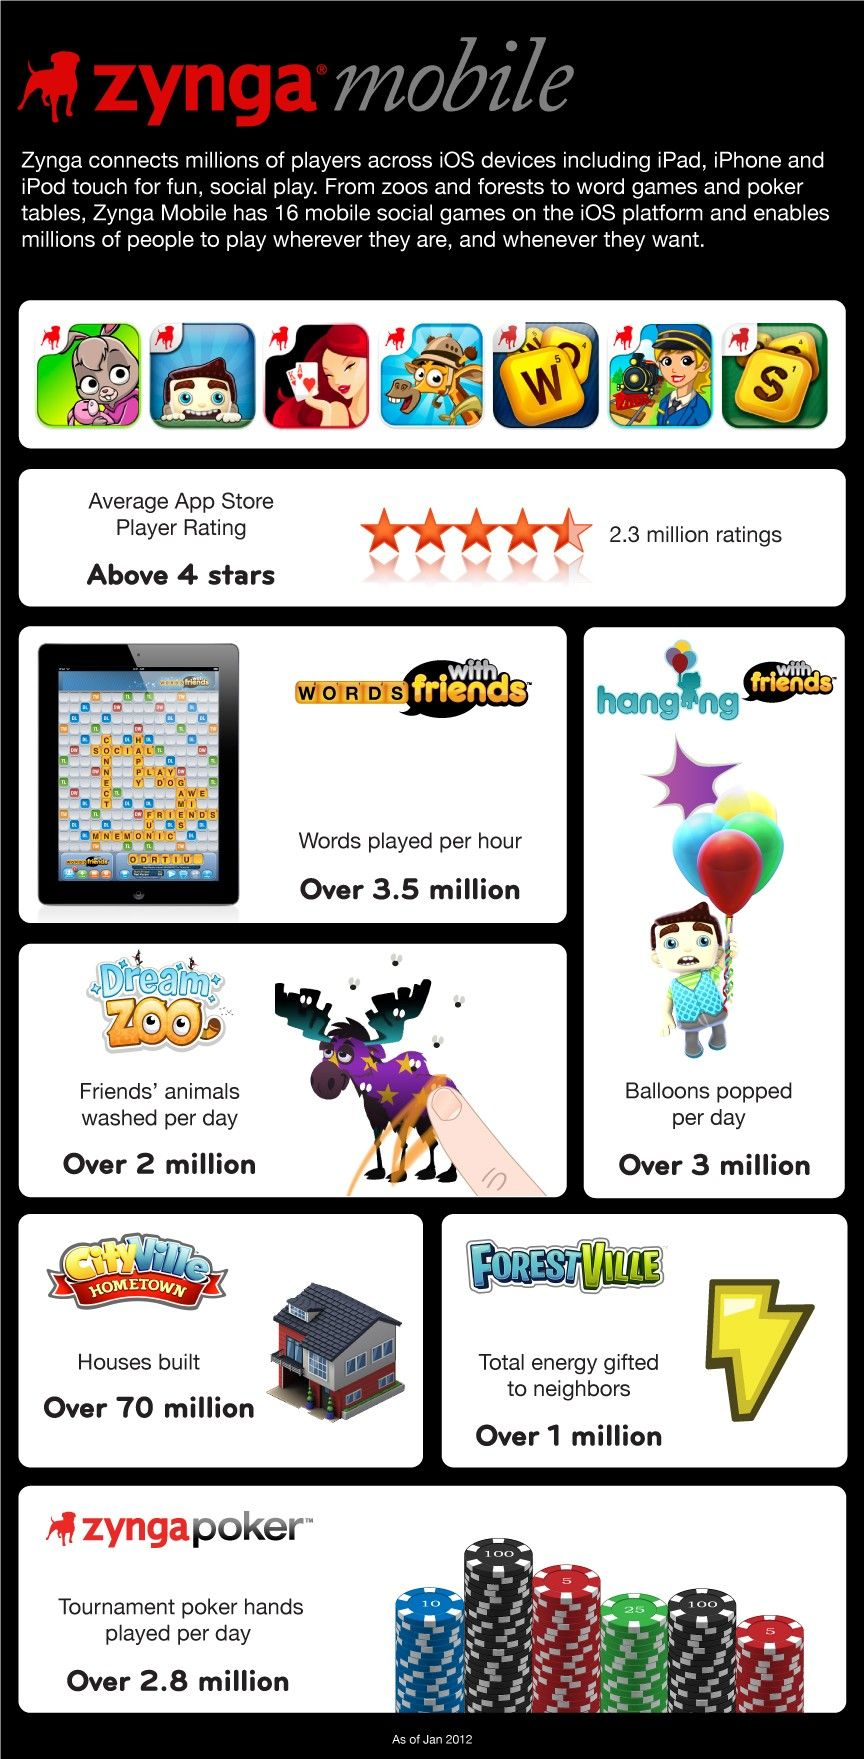 Player Love Week Zynga shows its undying affection for